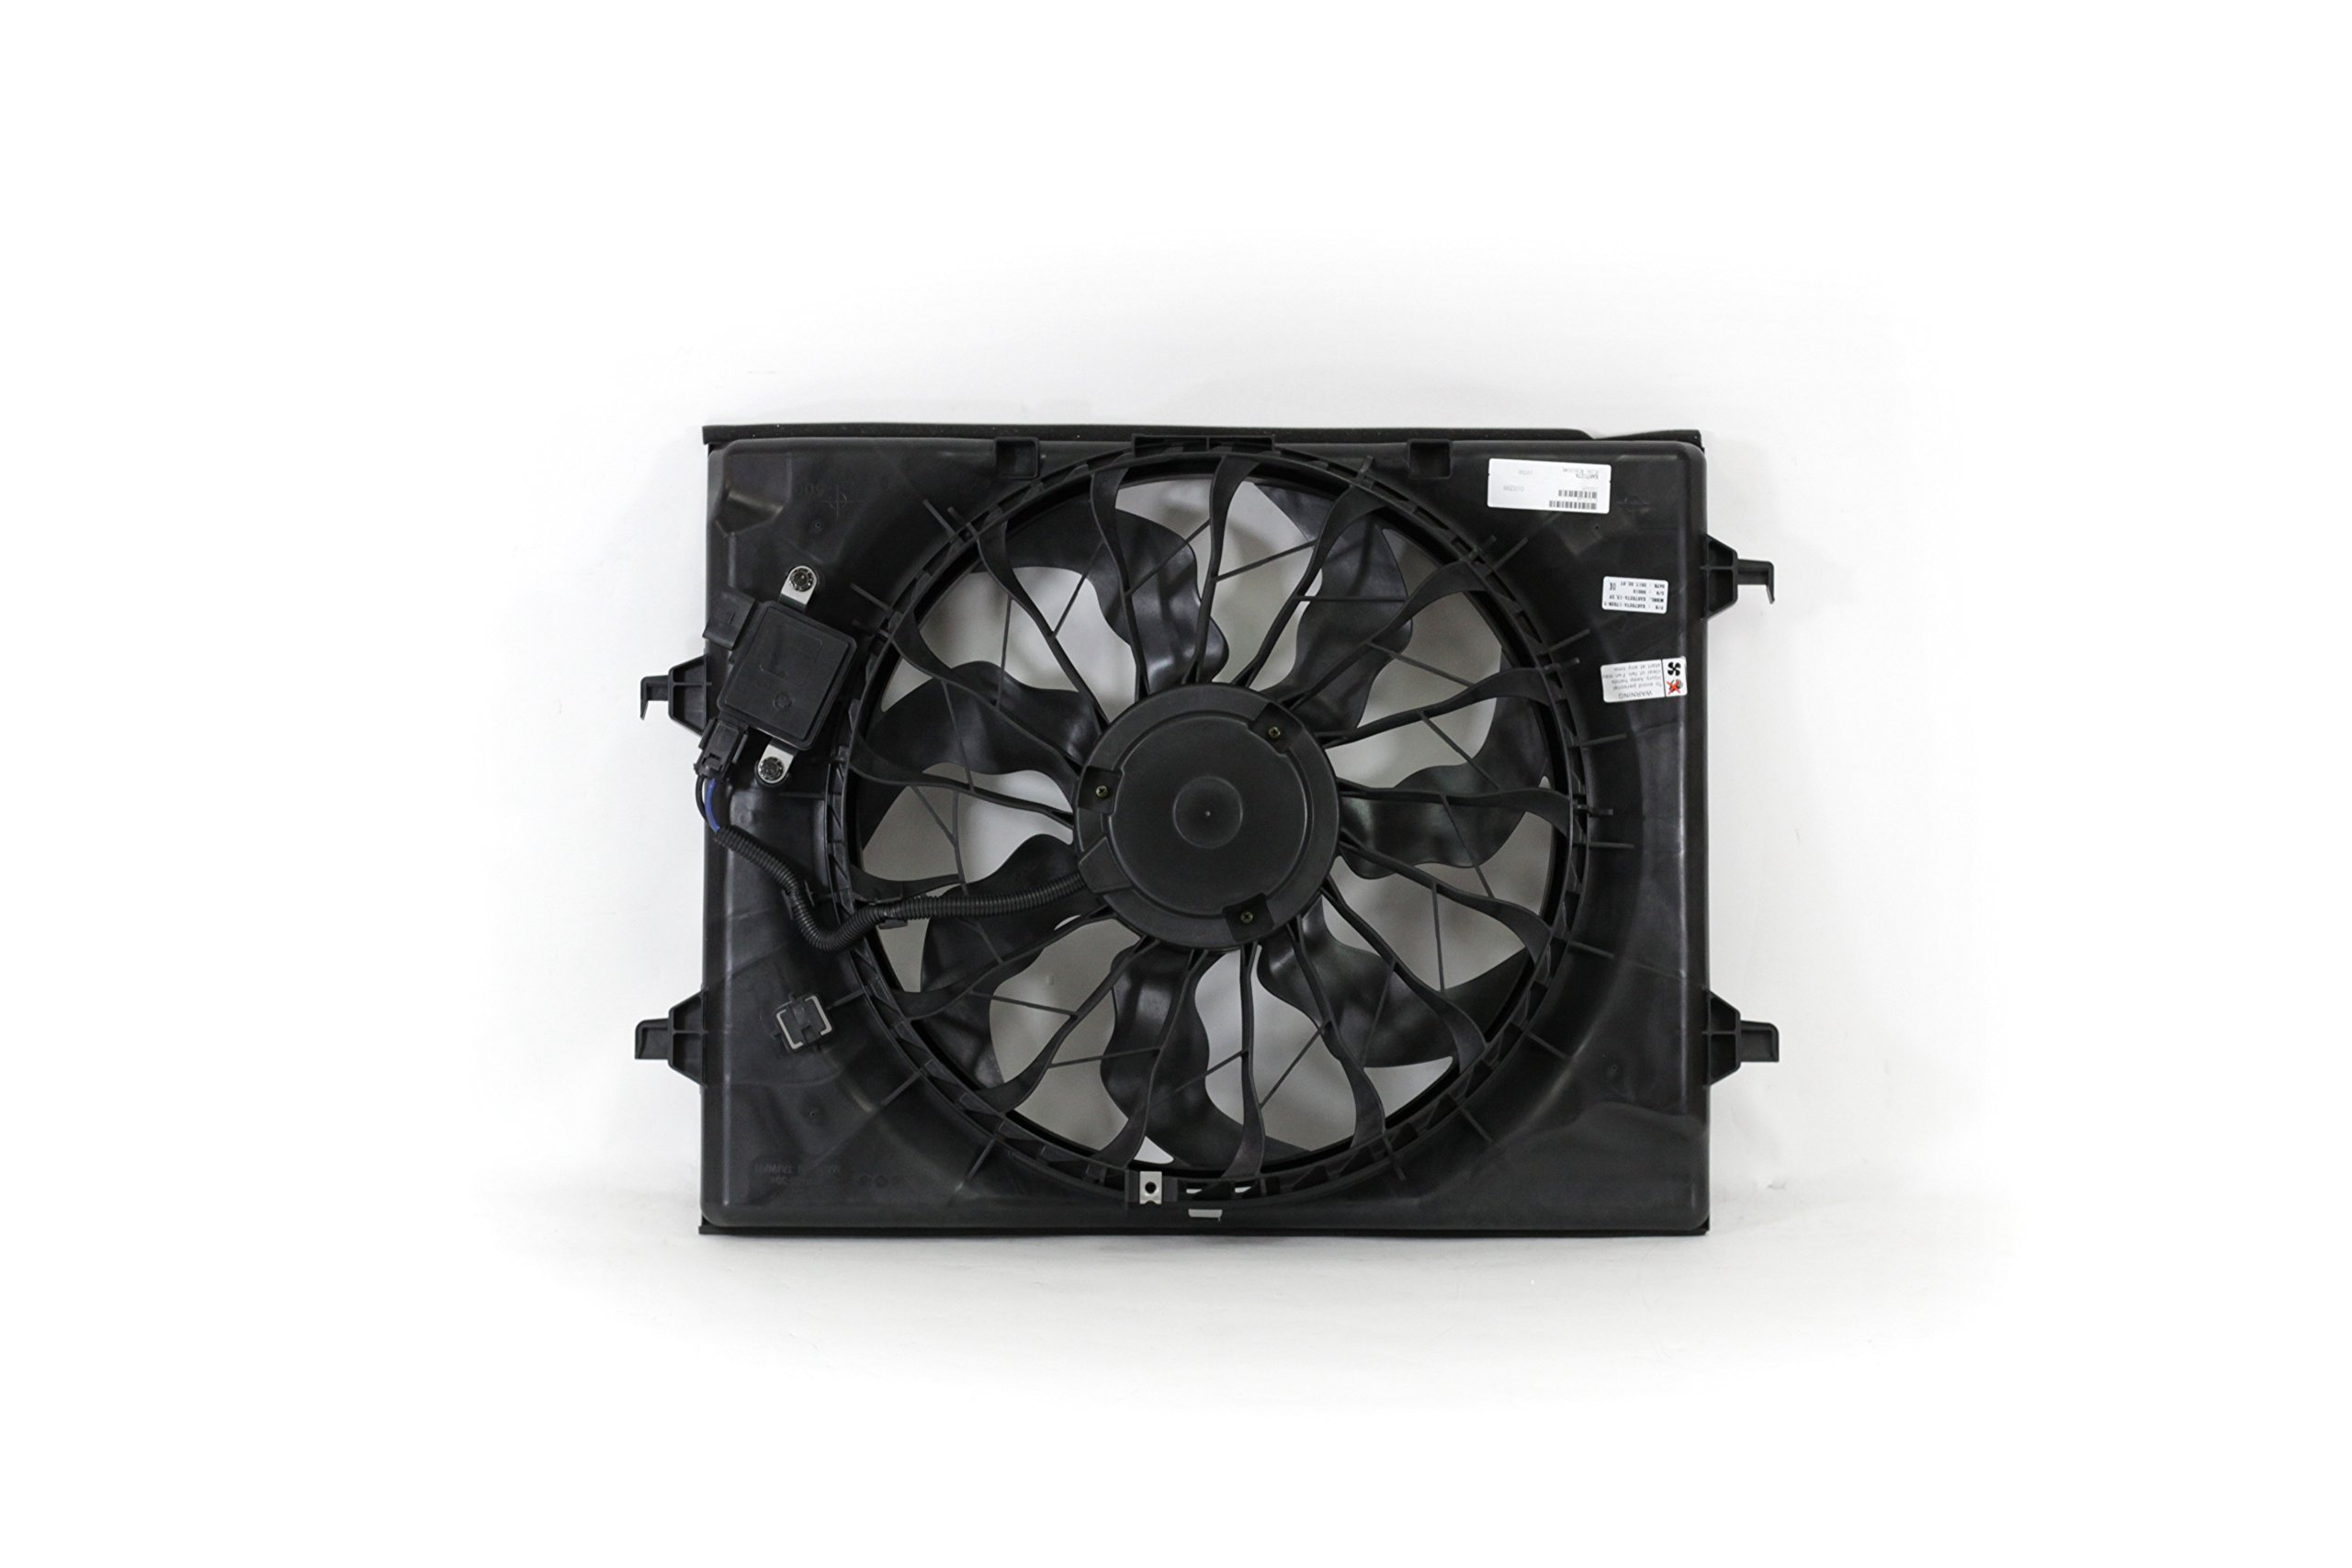 Engine Cooling Fan Assembly - Cooling Direct 25380D5200 16-17 Kia Optima 2.4L WITH Power Module